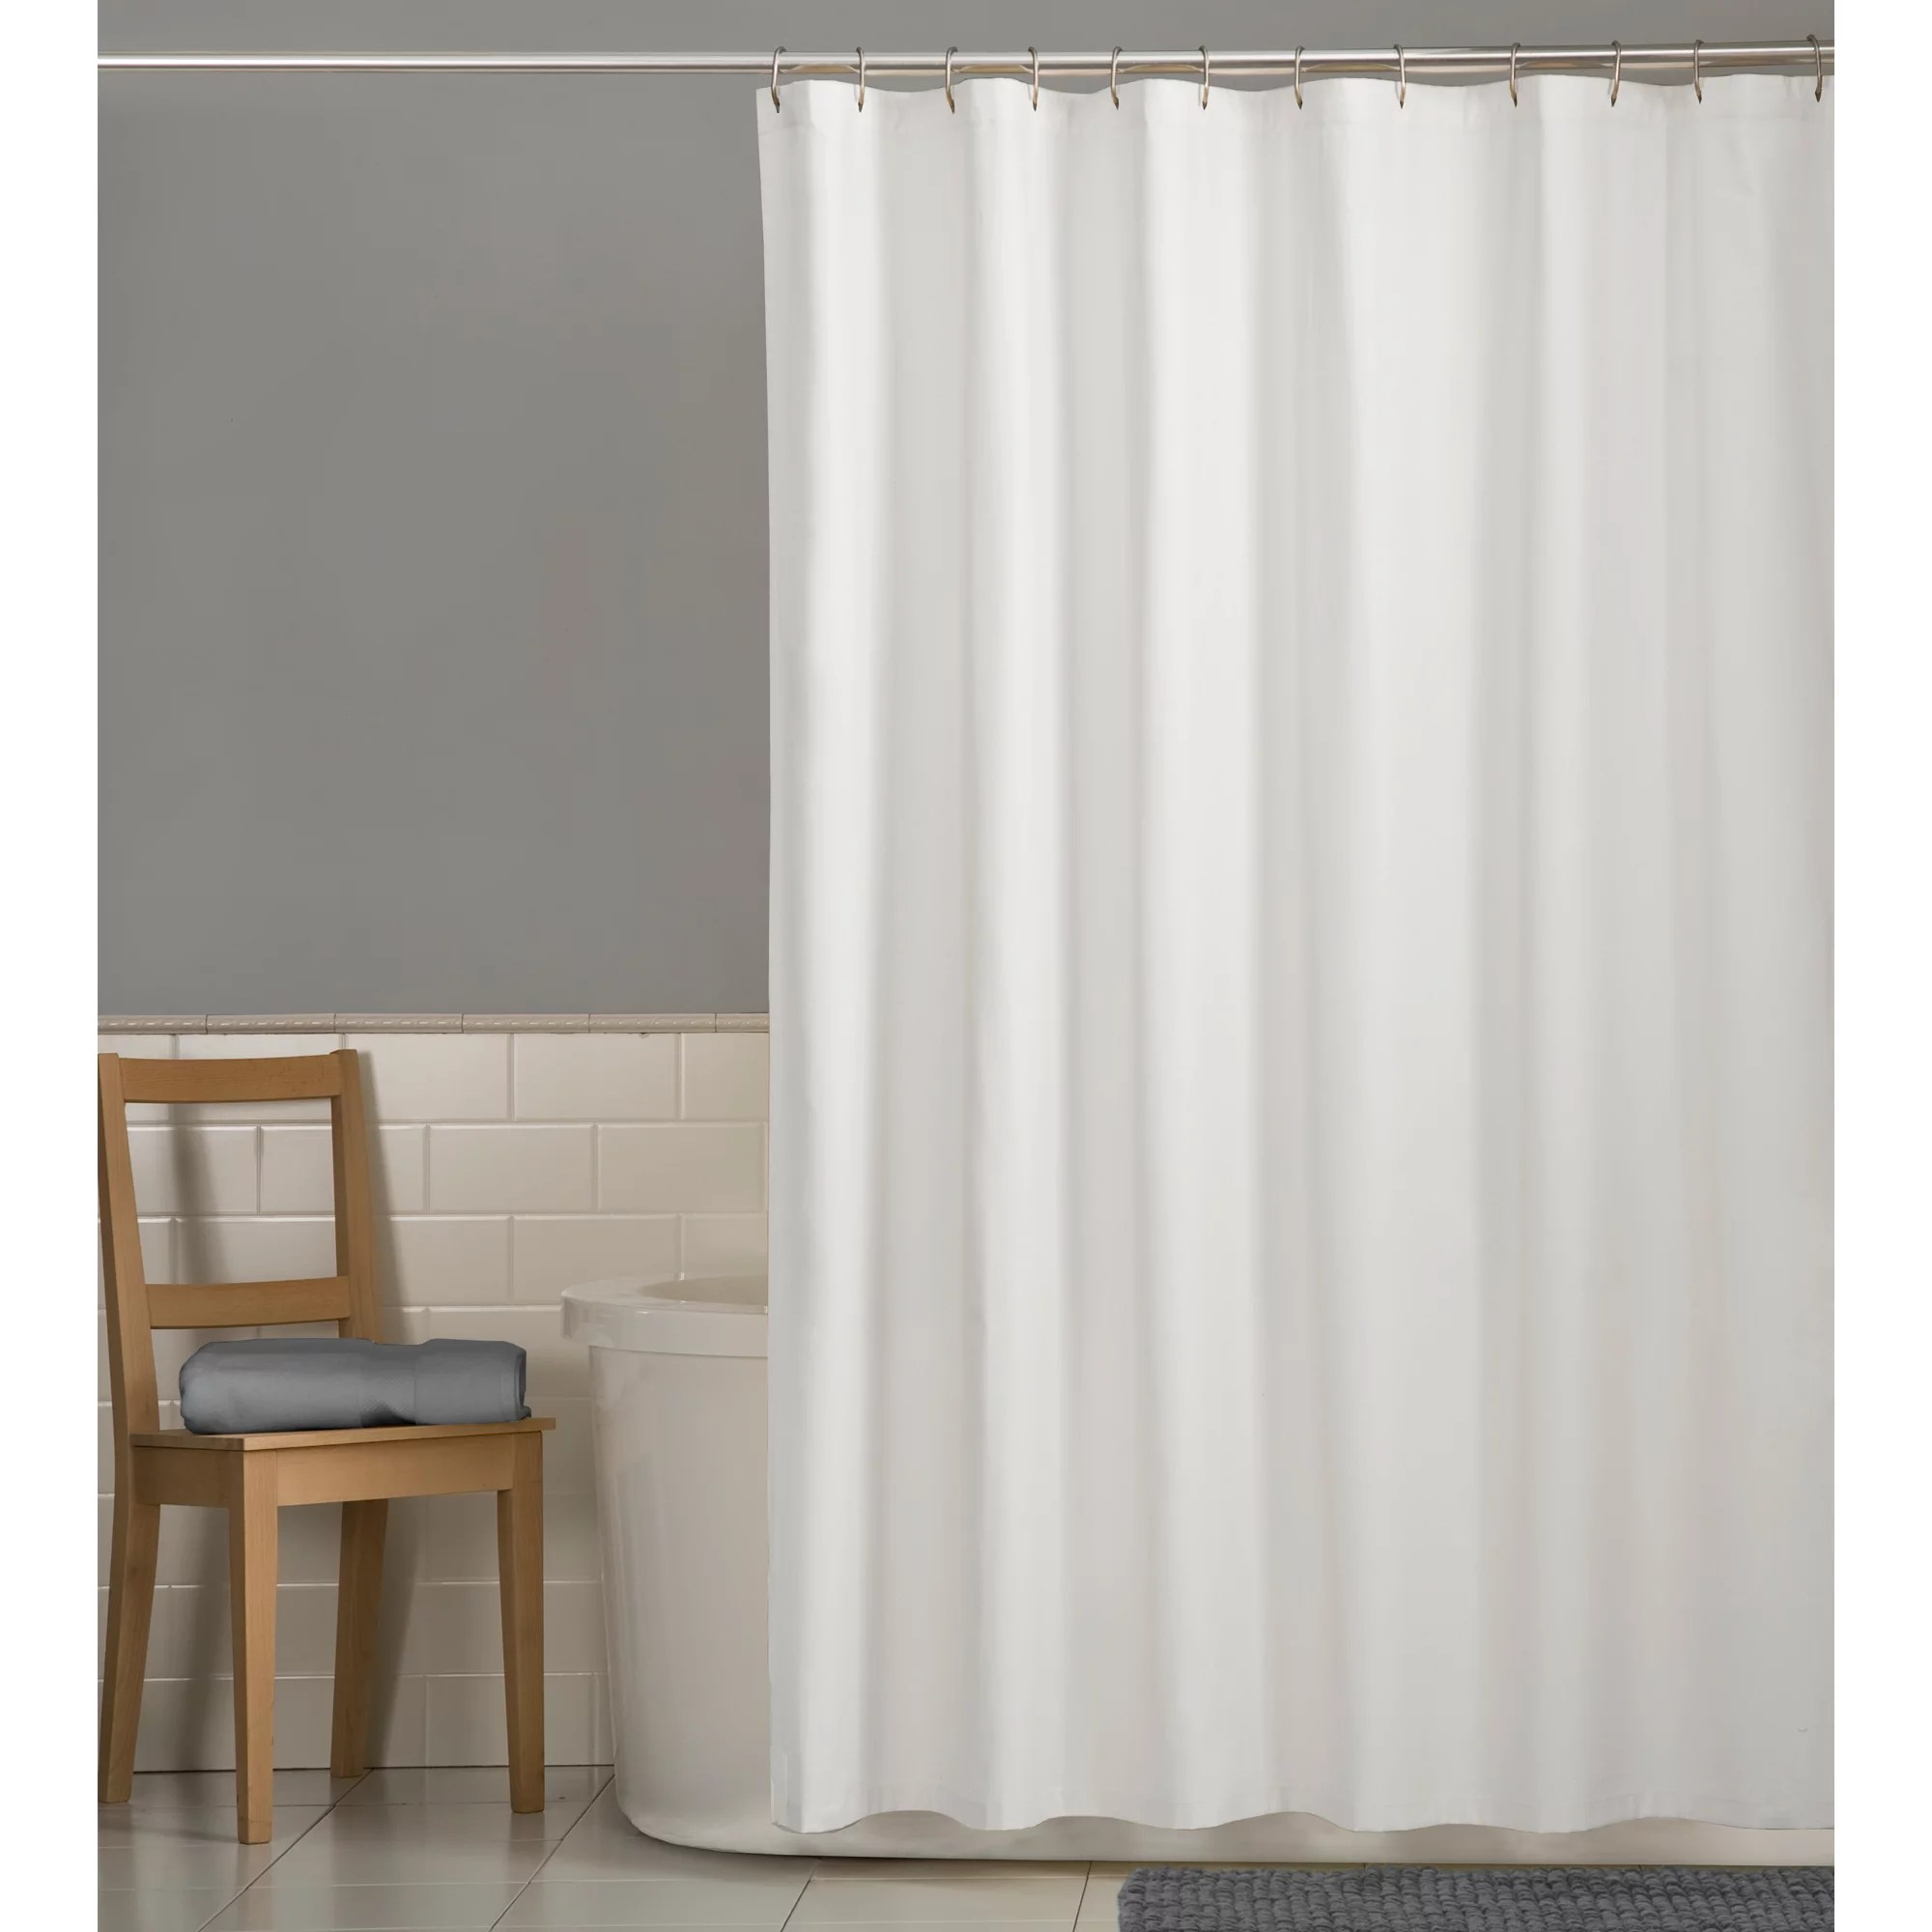 mainstays water repellent 70 x 72 fabric shower liner